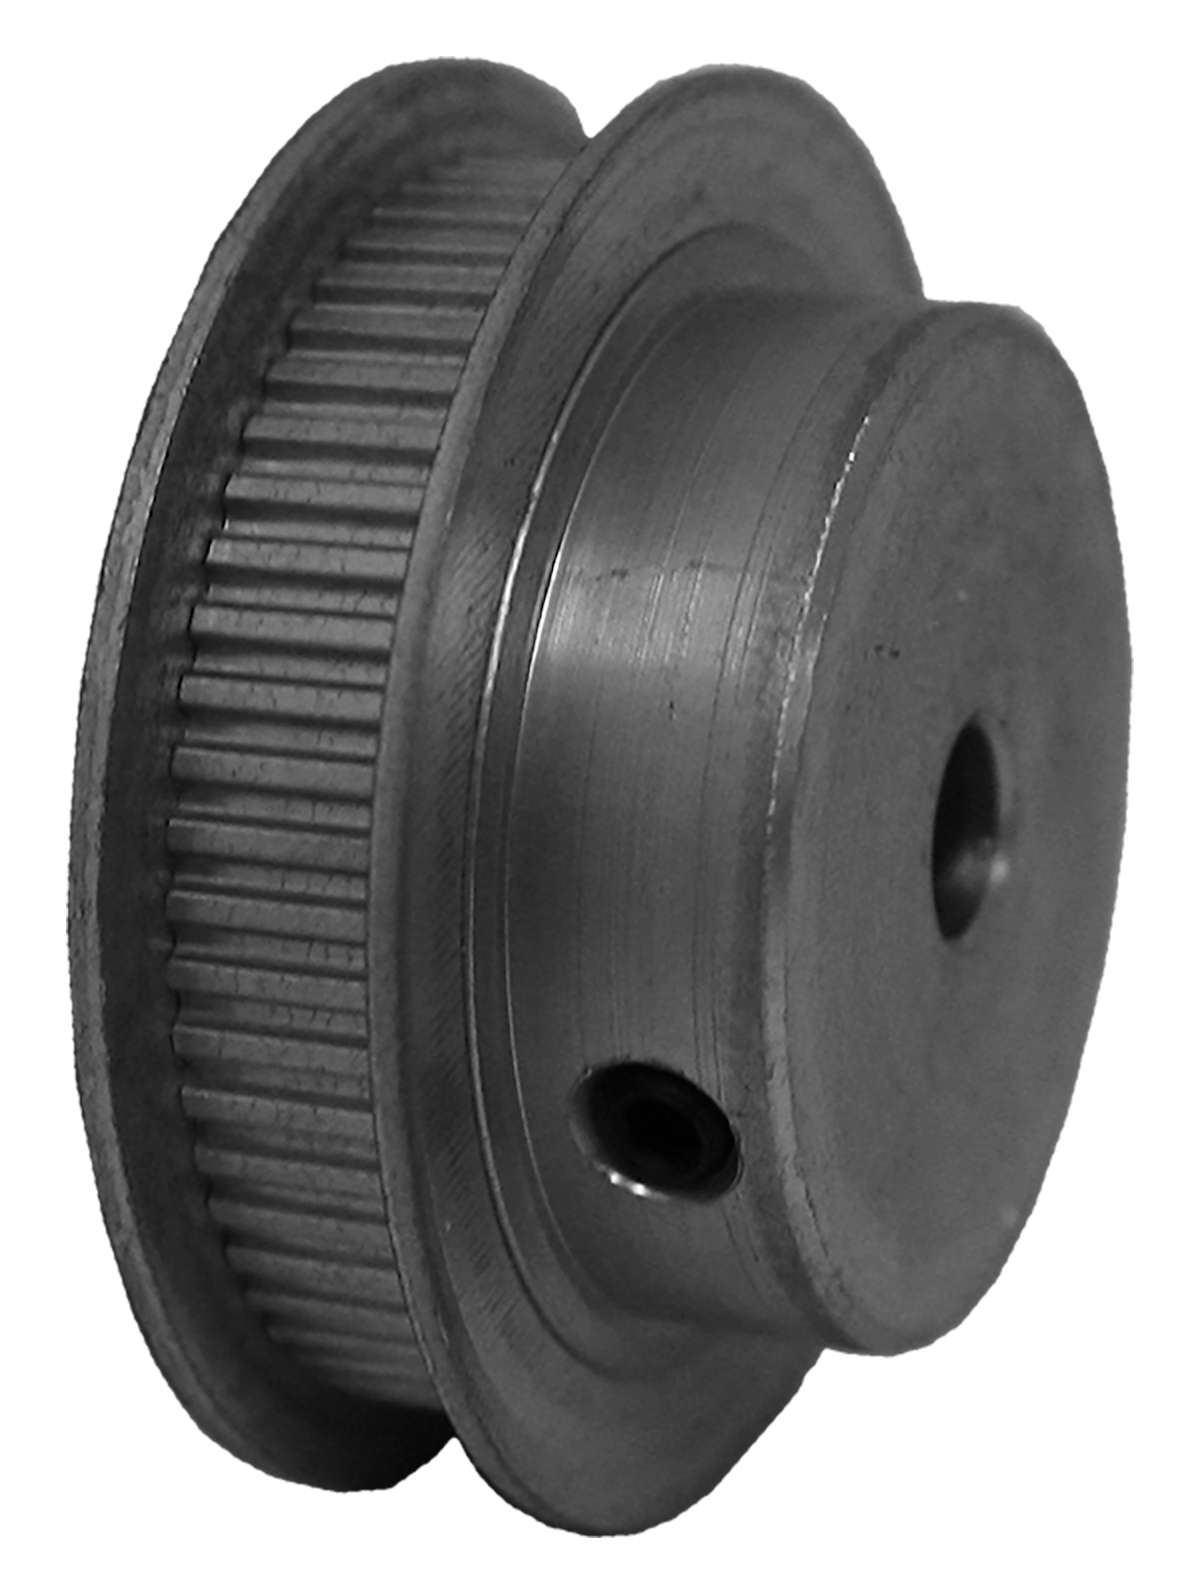 60MP025-6FA3 - Aluminum Imperial Pitch Pulleys